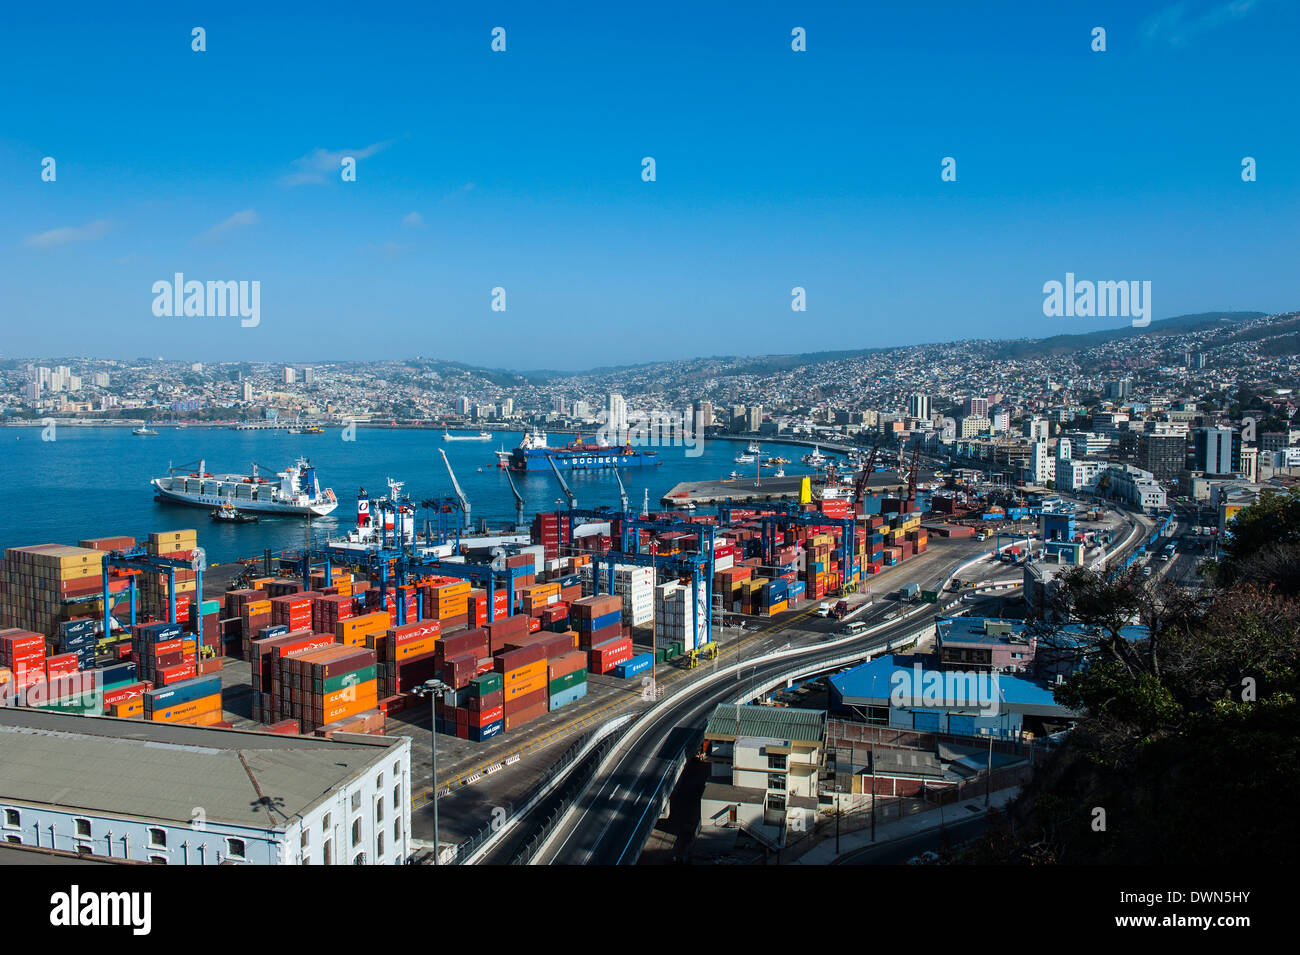 View over the cargo port of Valparaiso, Chile, South America - Stock Image